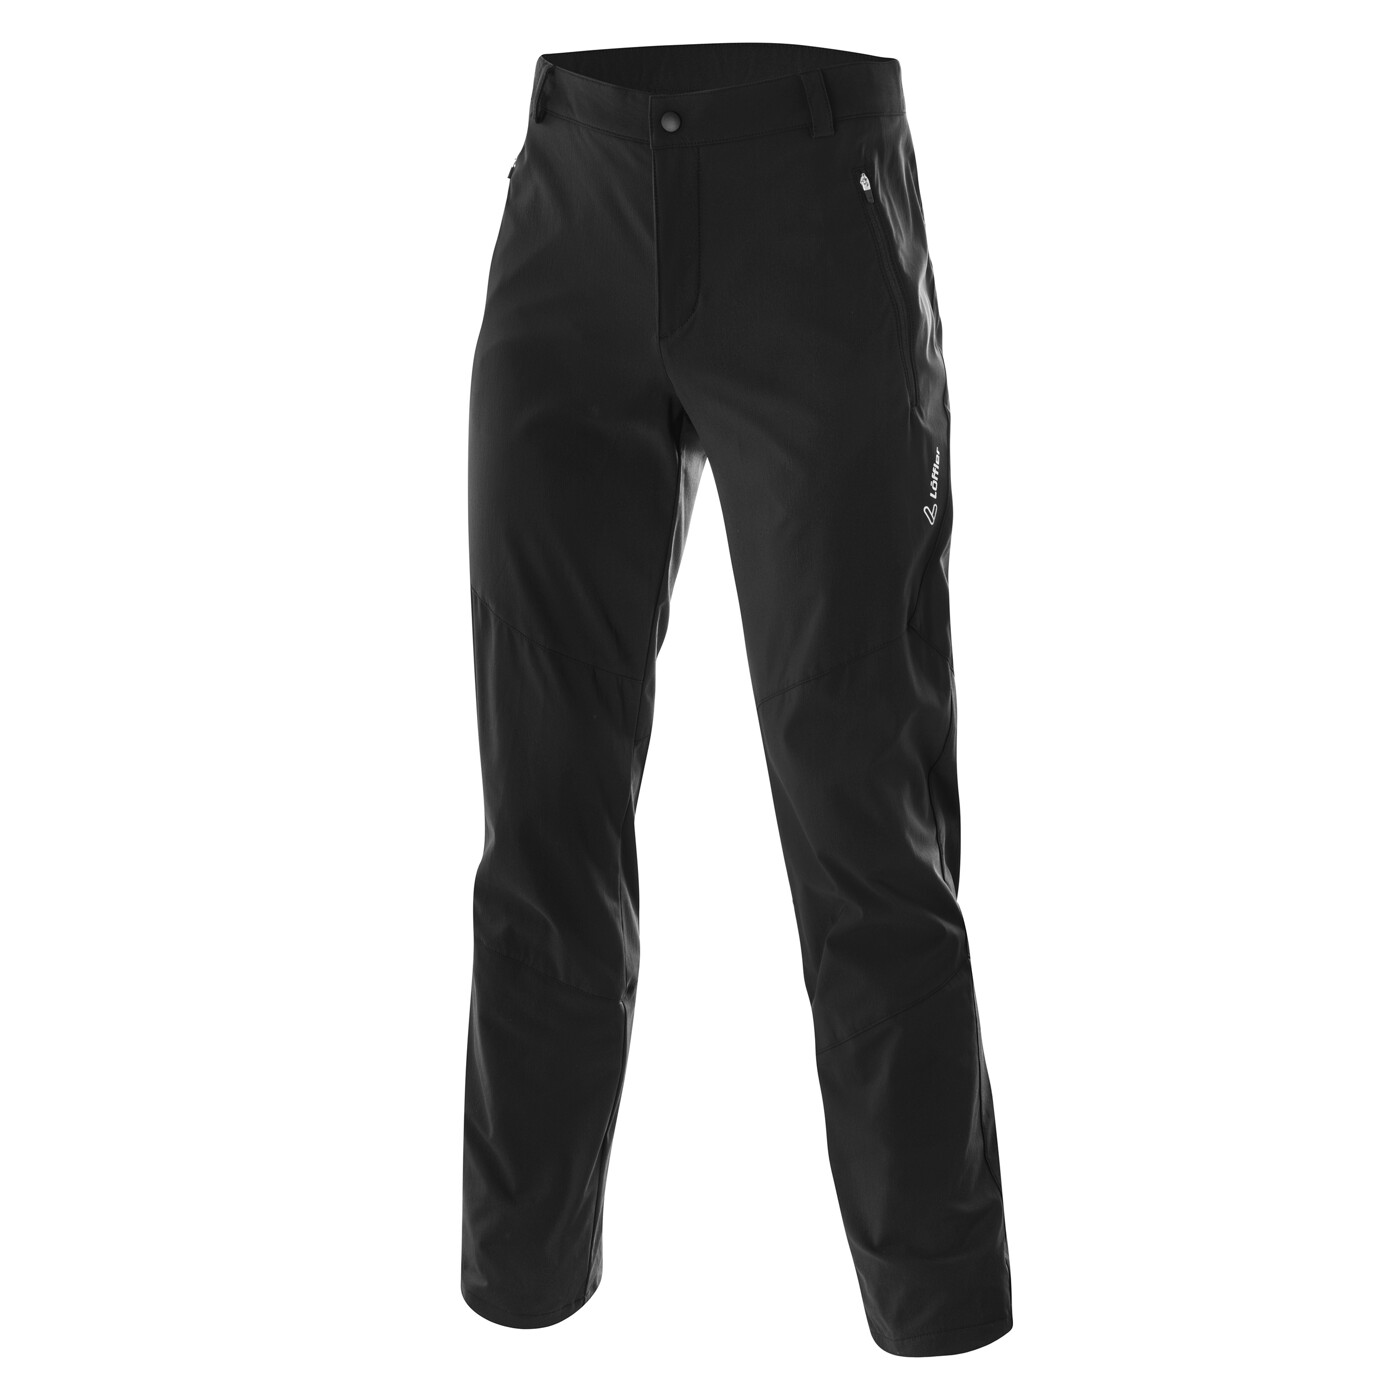 LÖFFLER M PANTS COMFORT AS - Herren